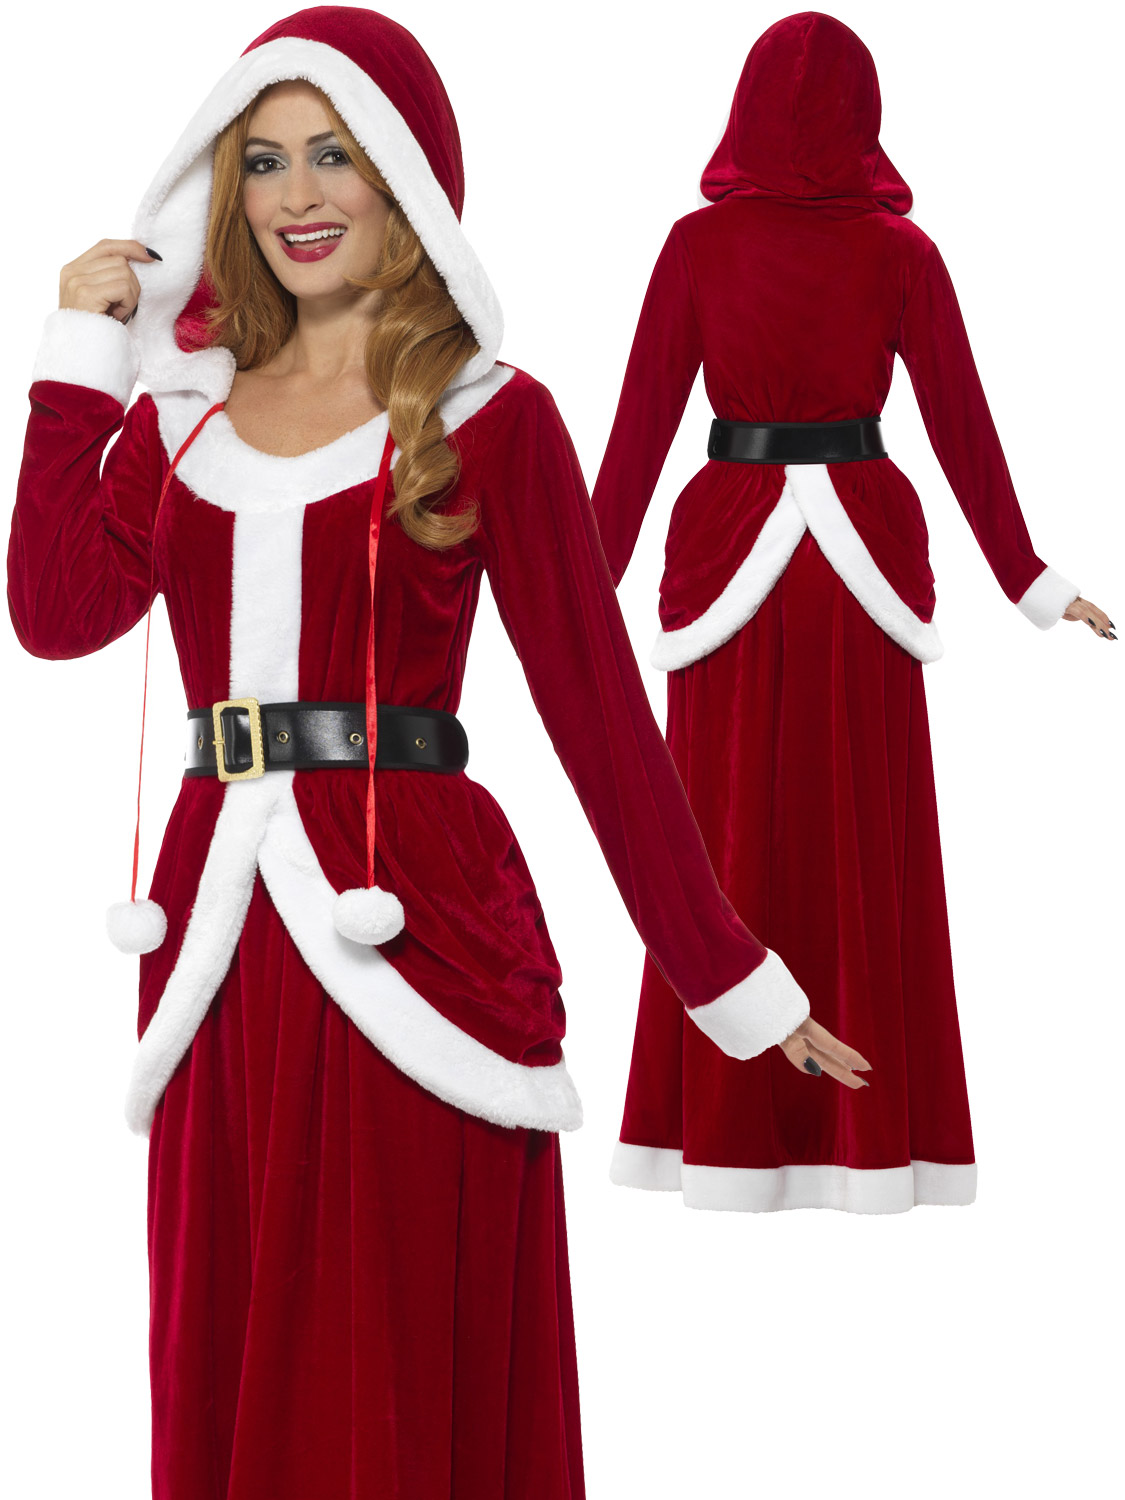 Ladies deluxe miss claus mrs santa long fancy dress costume transform yourself into mrs claus this christmas with this stunning fancy dress costume solutioingenieria Images